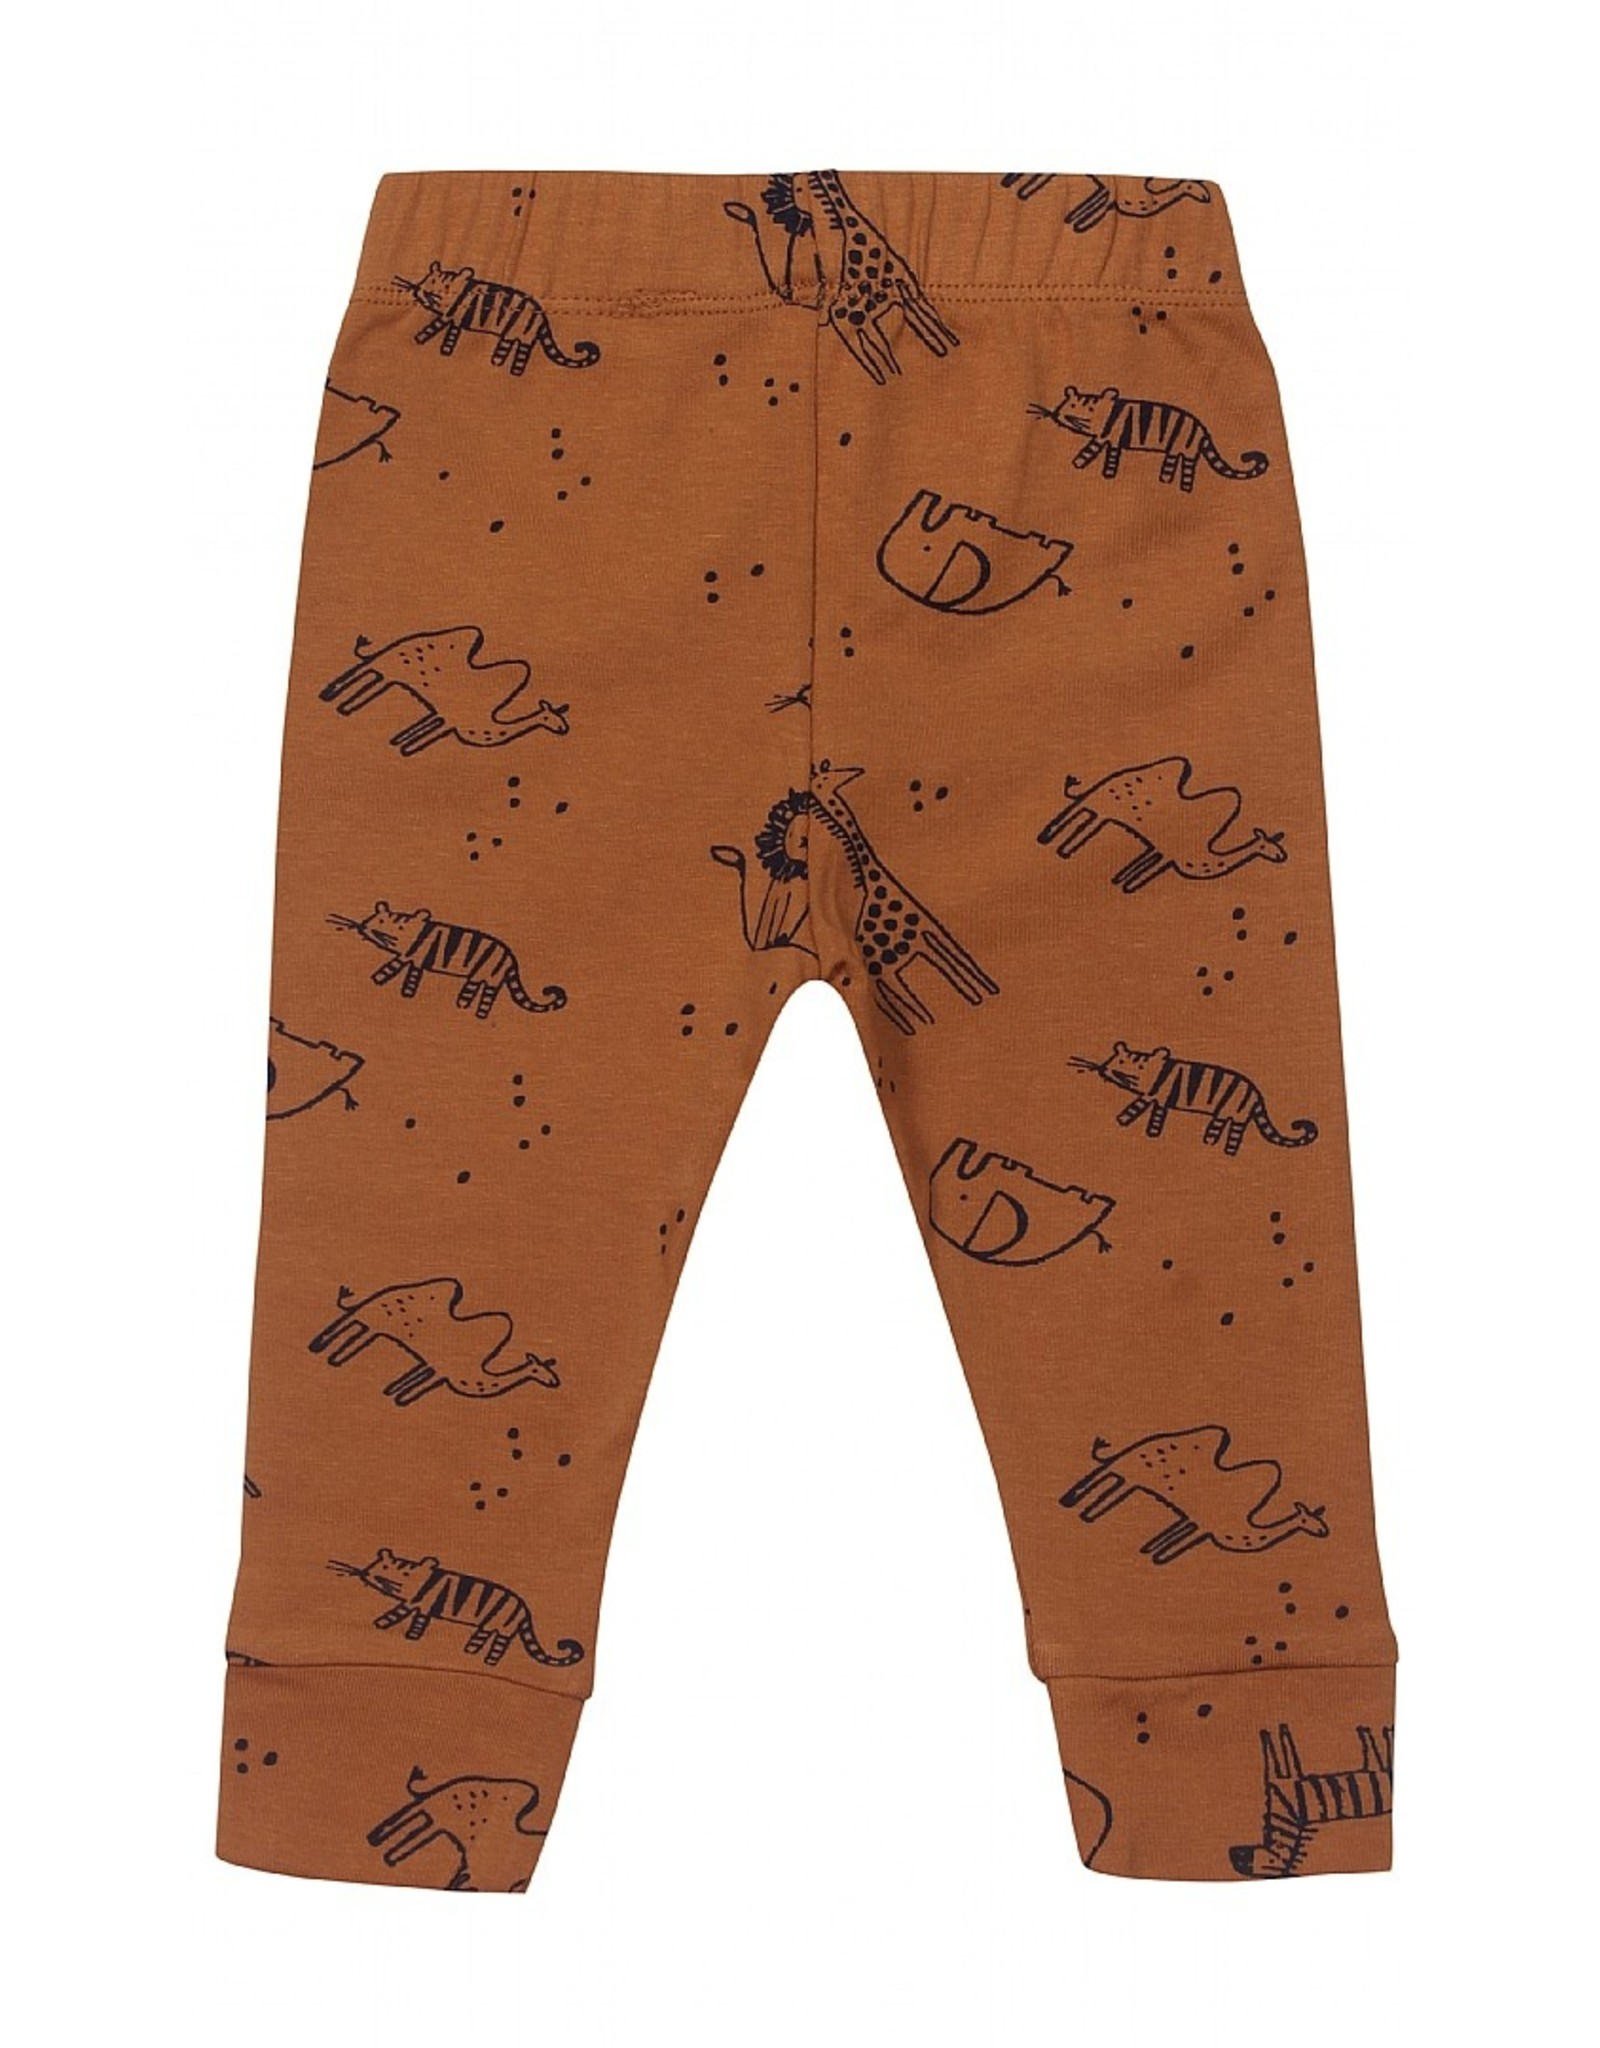 KIDS UP Kids Up Pants AOP Brown